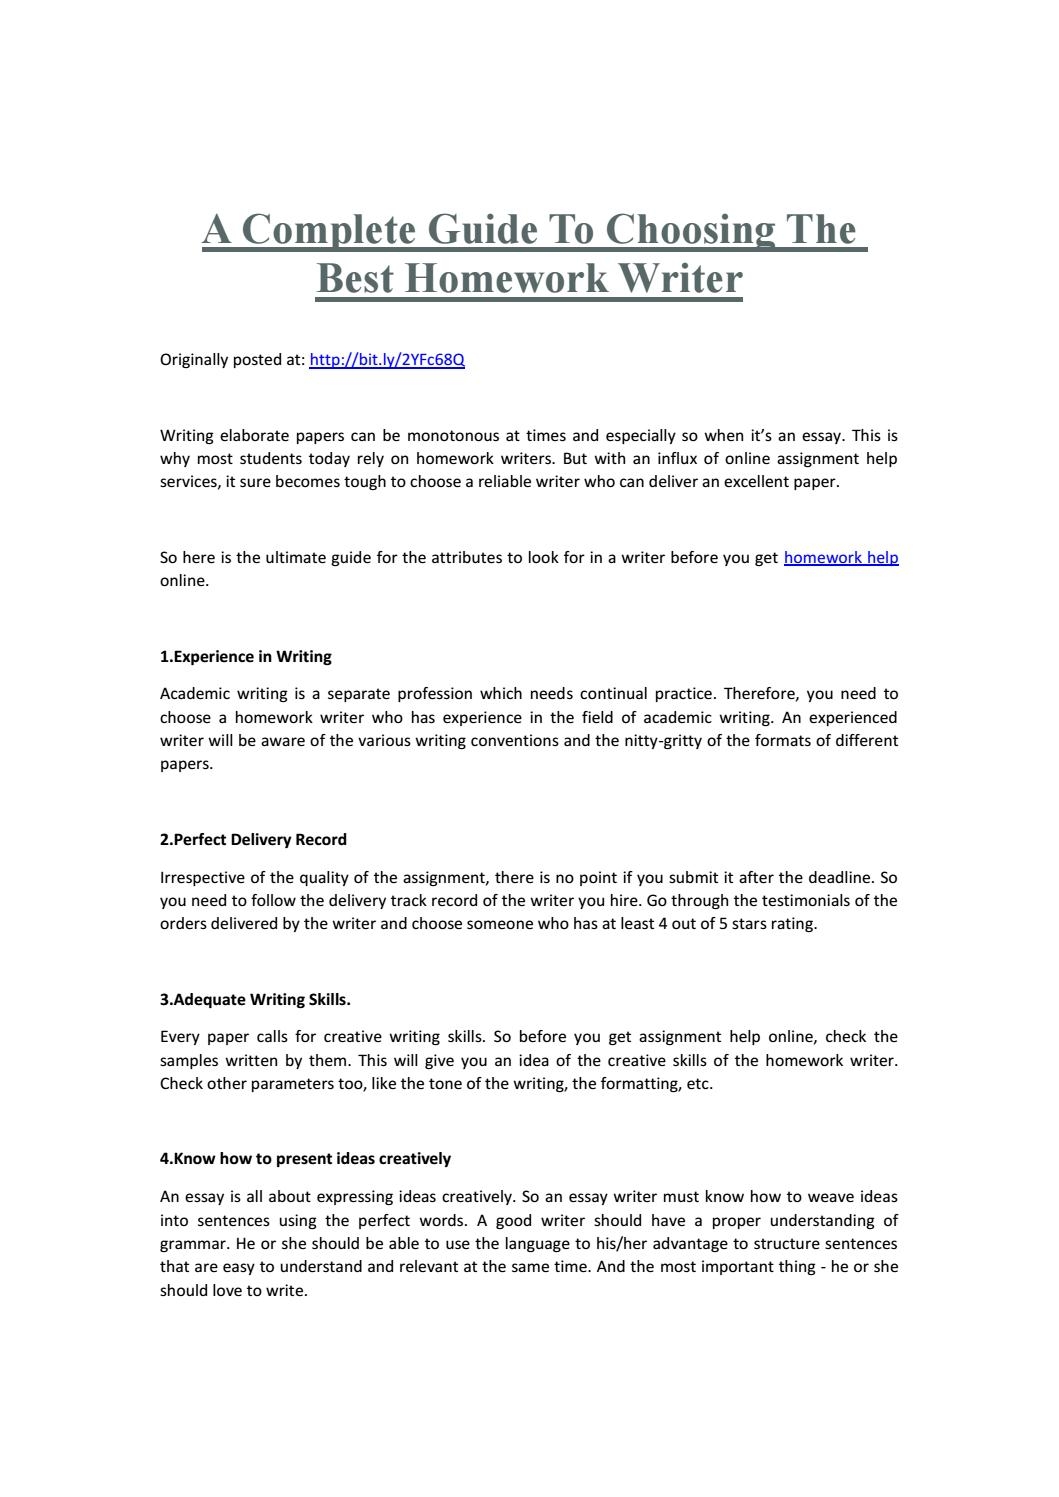 Home work writing for hire kenko essays on idleness